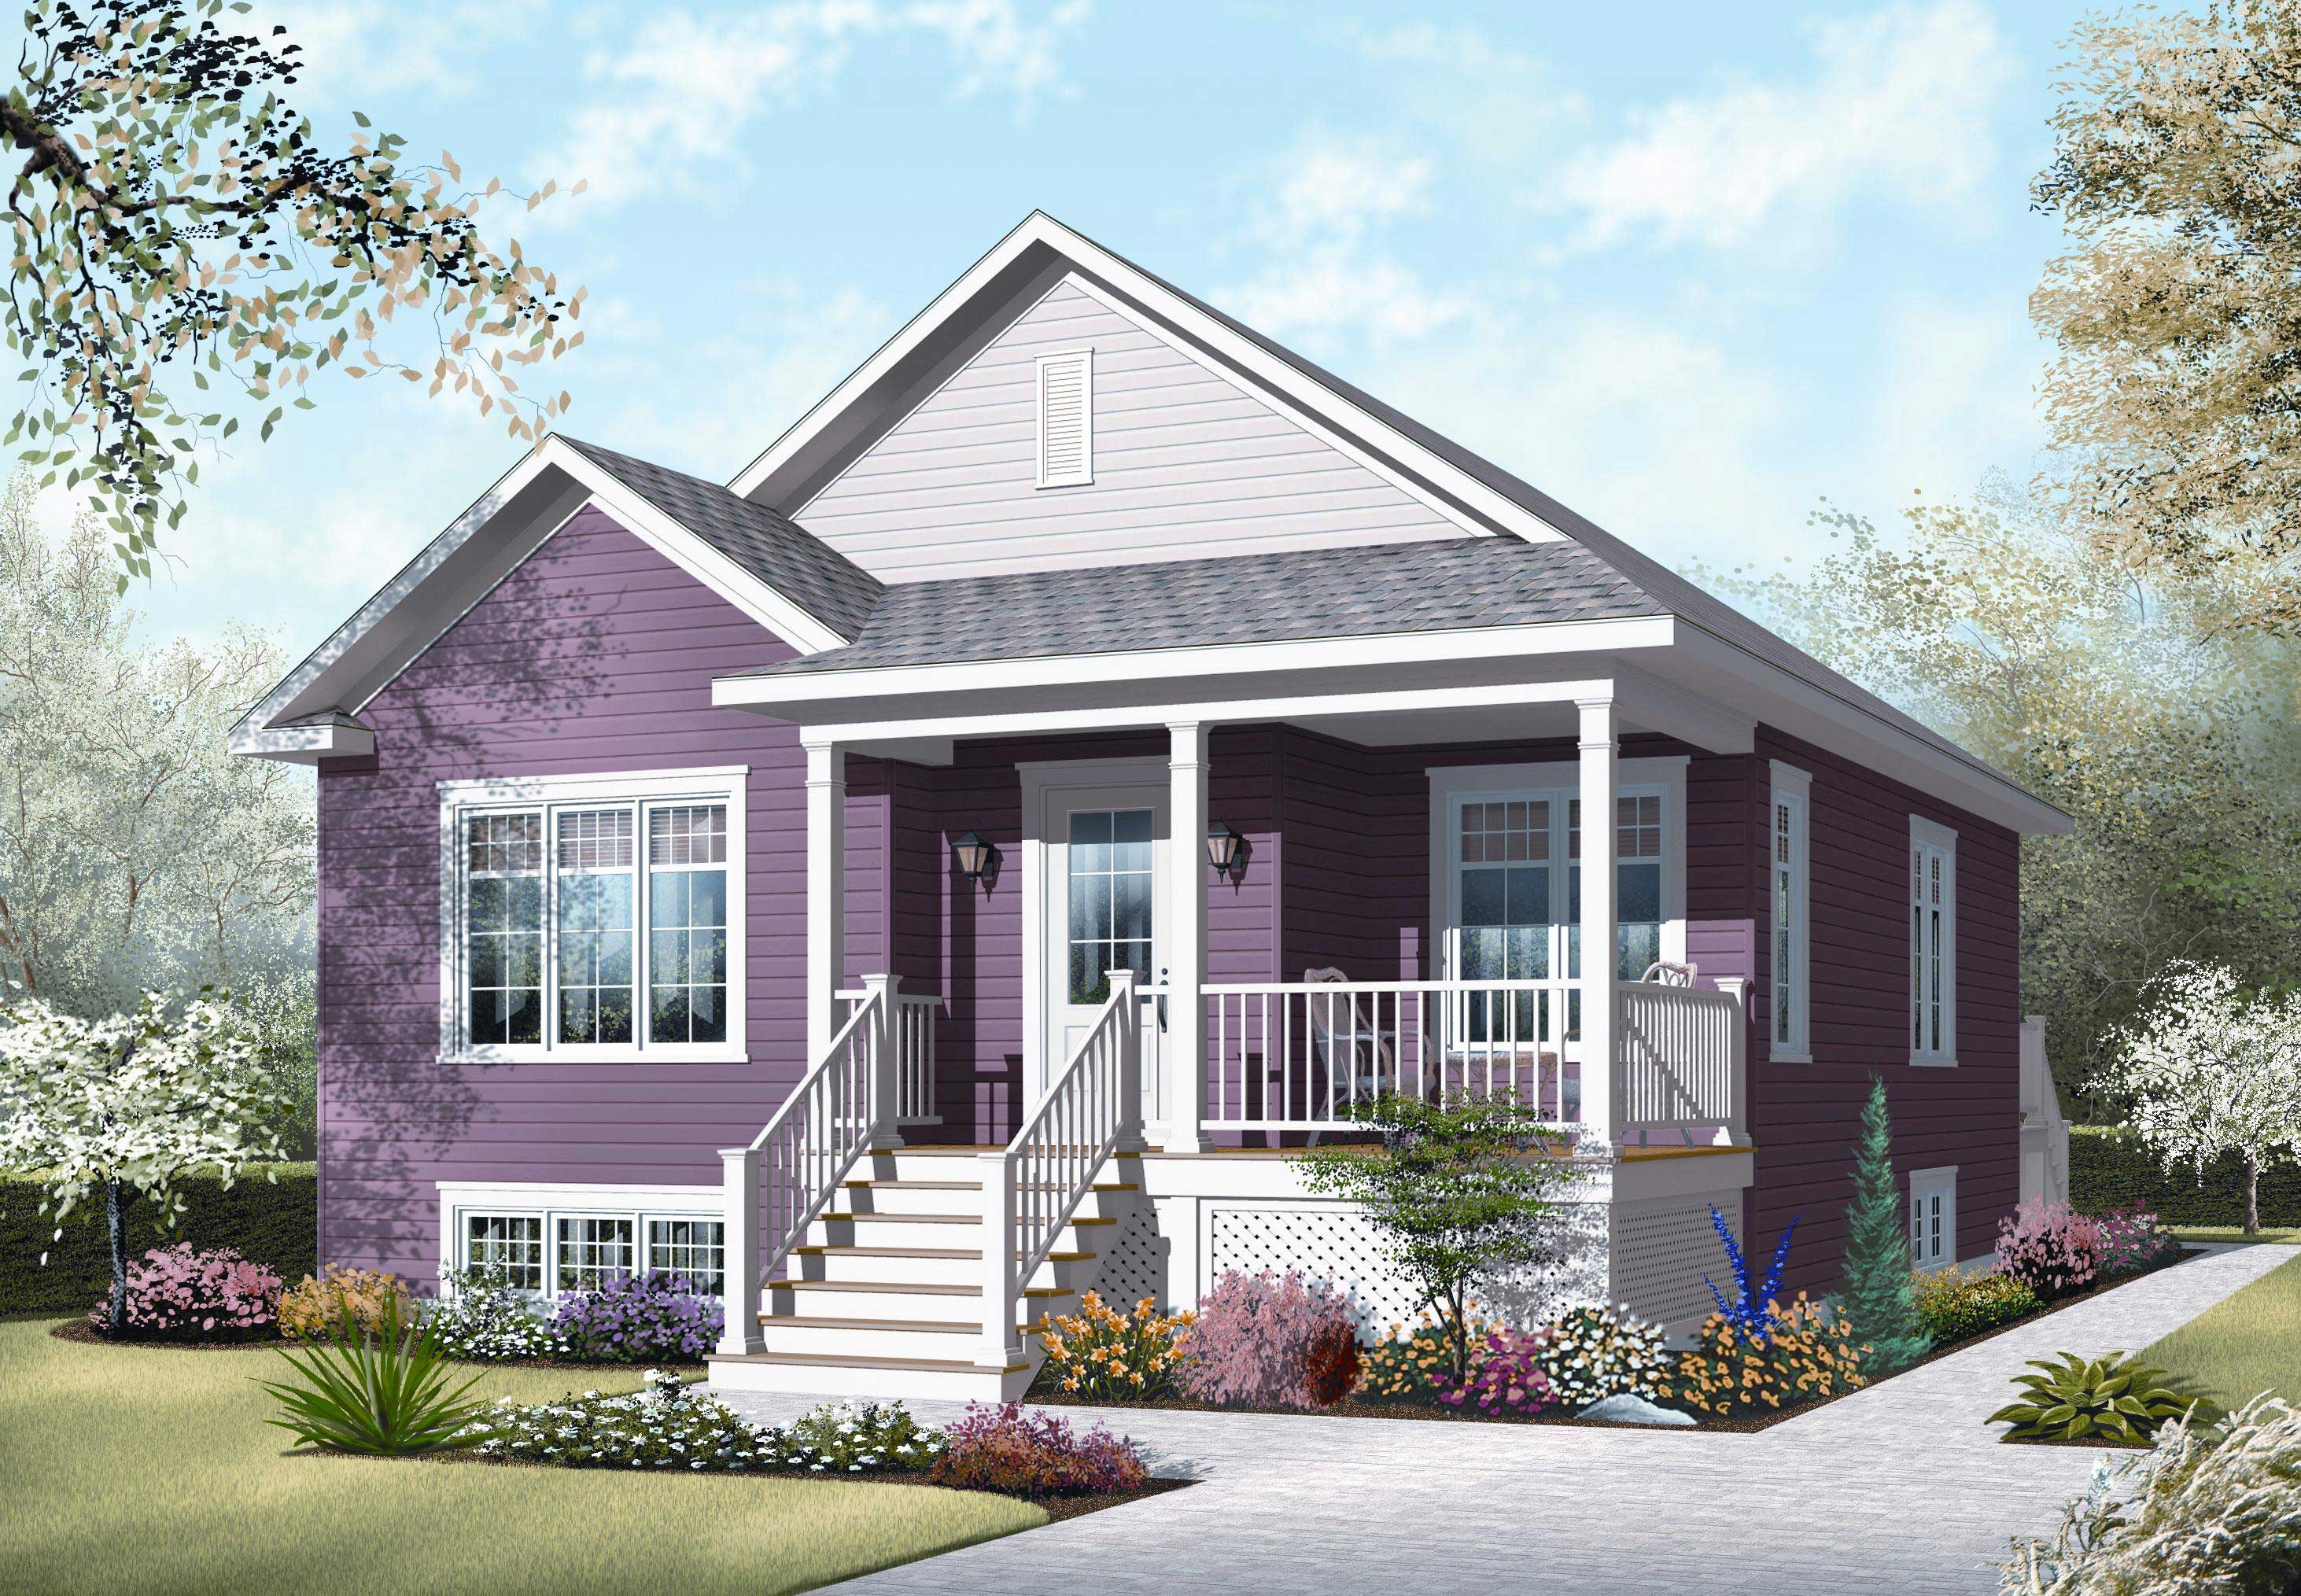 Bungalow Home Plan - 2 Bedrms, 1 Baths - 1017 Sq Ft - #126 ...